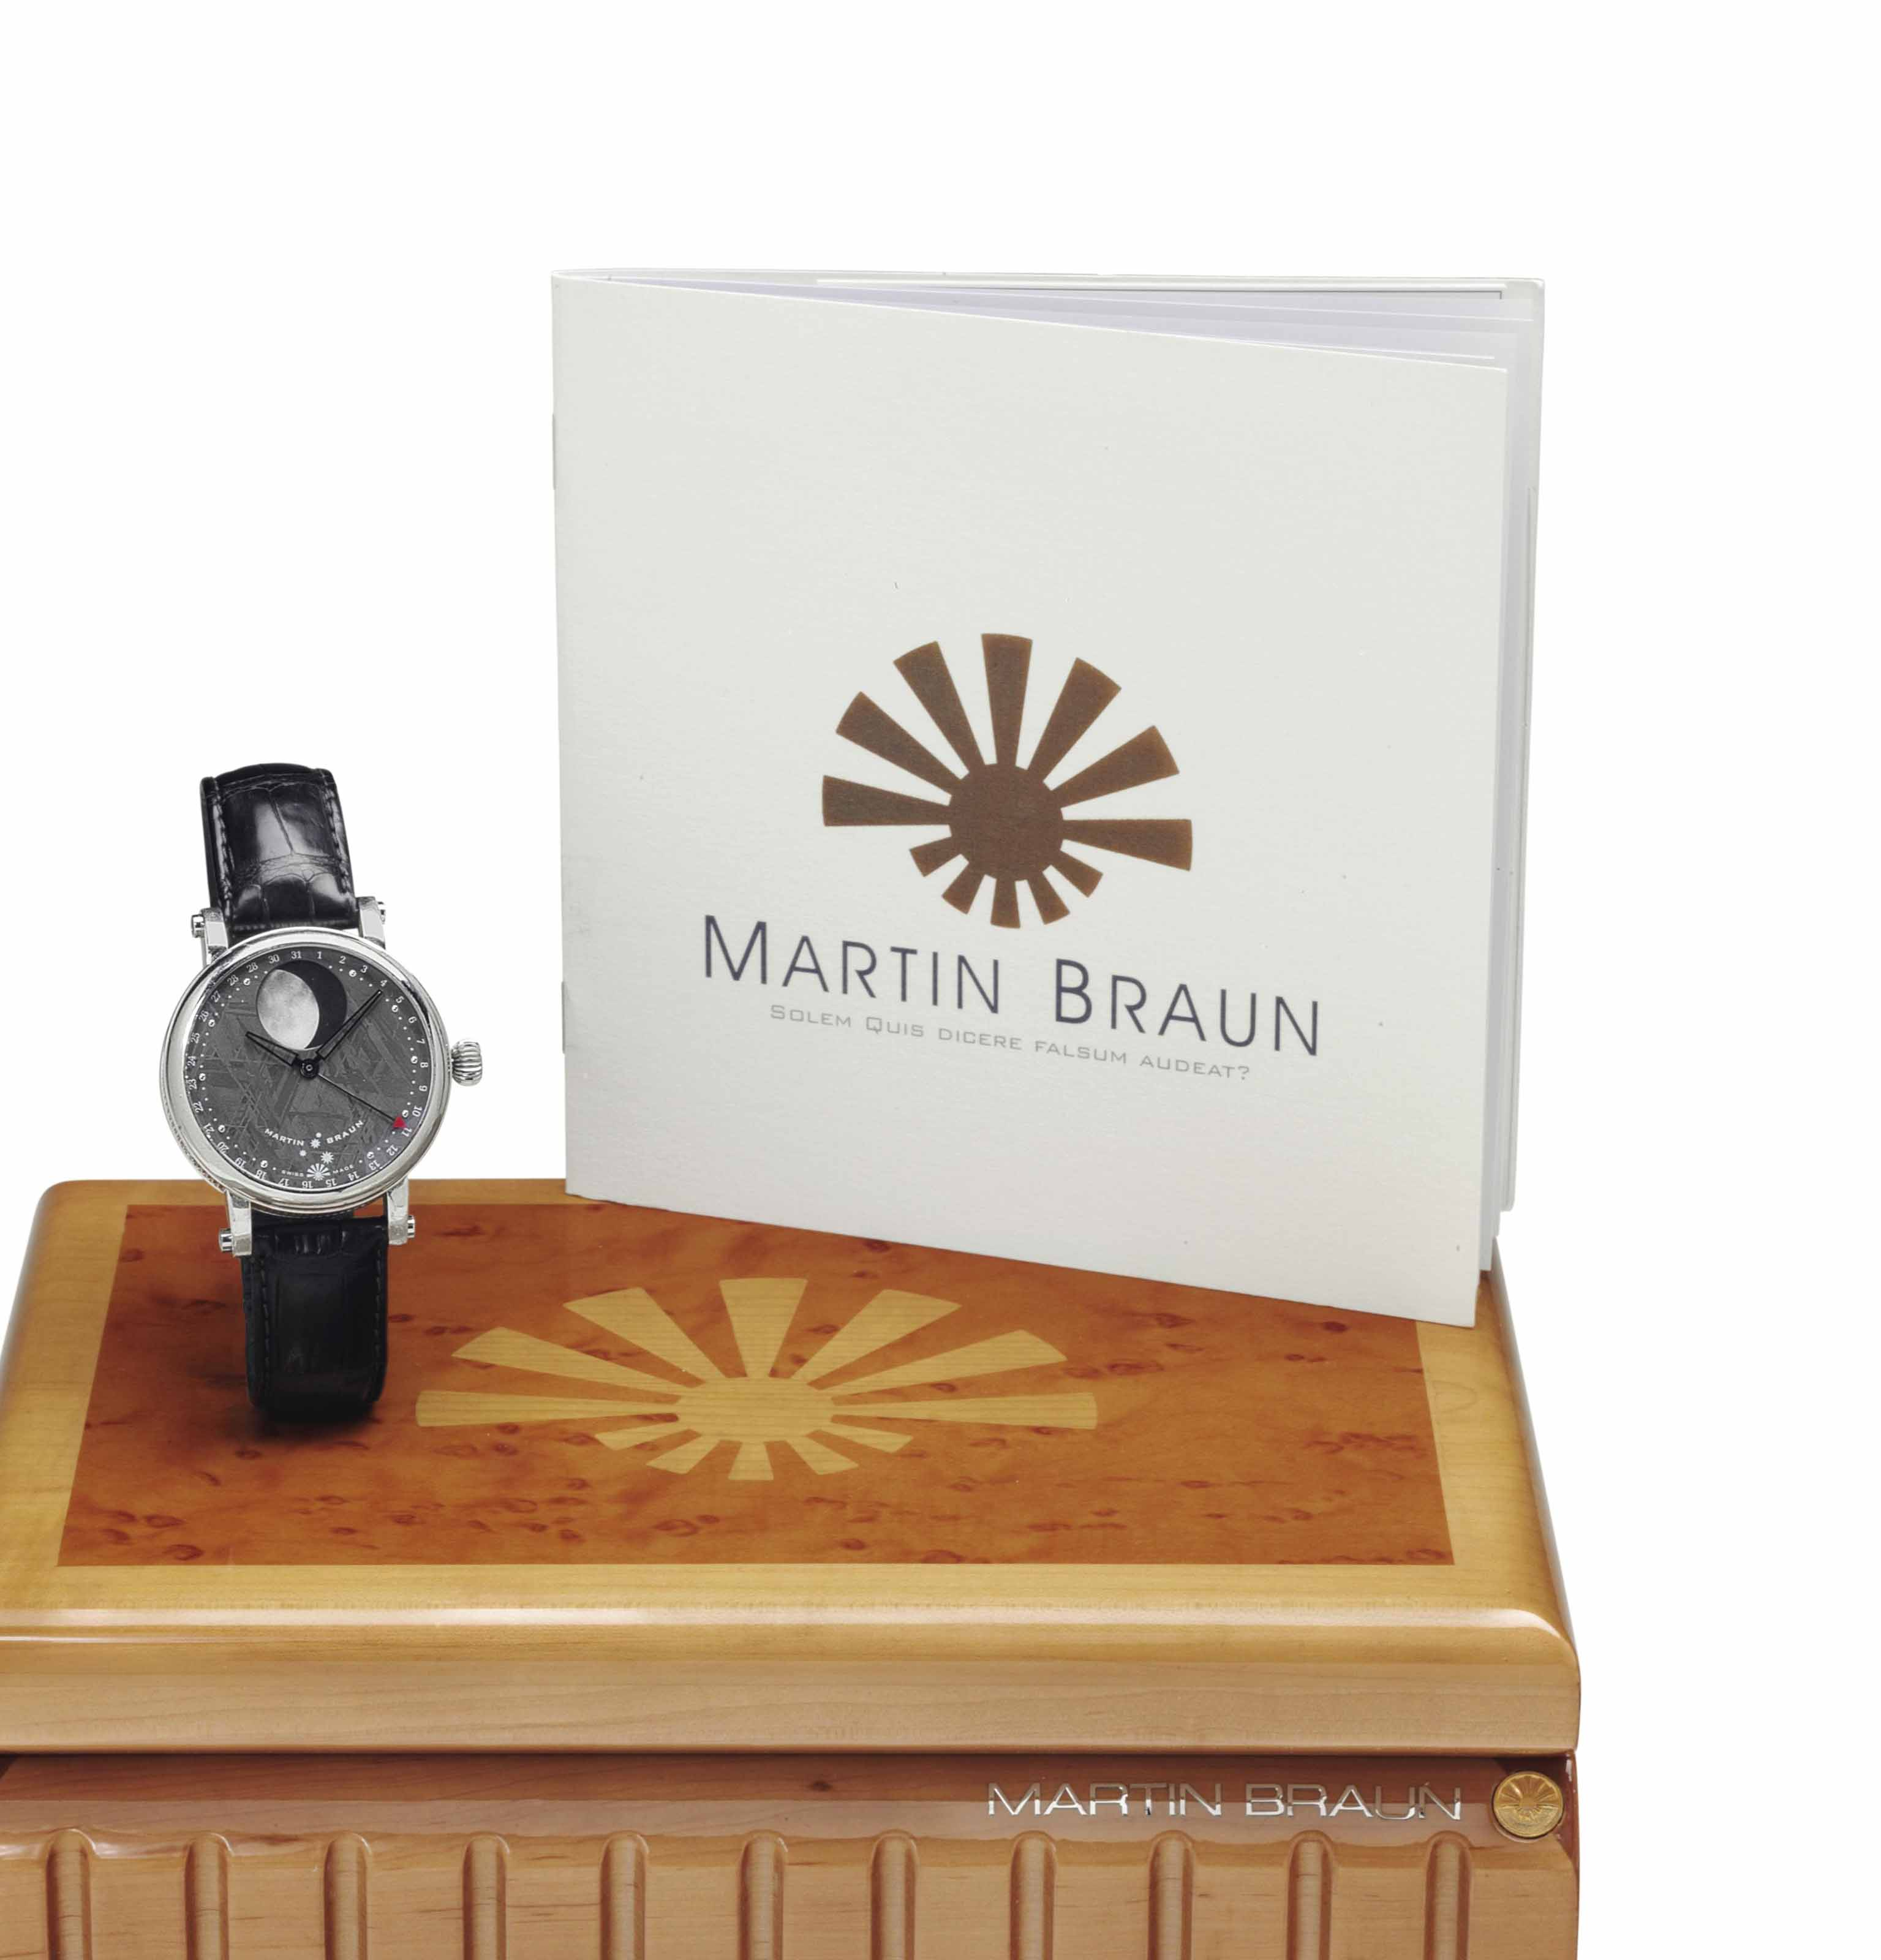 Martin Braun. A Unique Platinum and Meteorite Automatic Wristwatch with Unusual Date Ring and Moon Phases